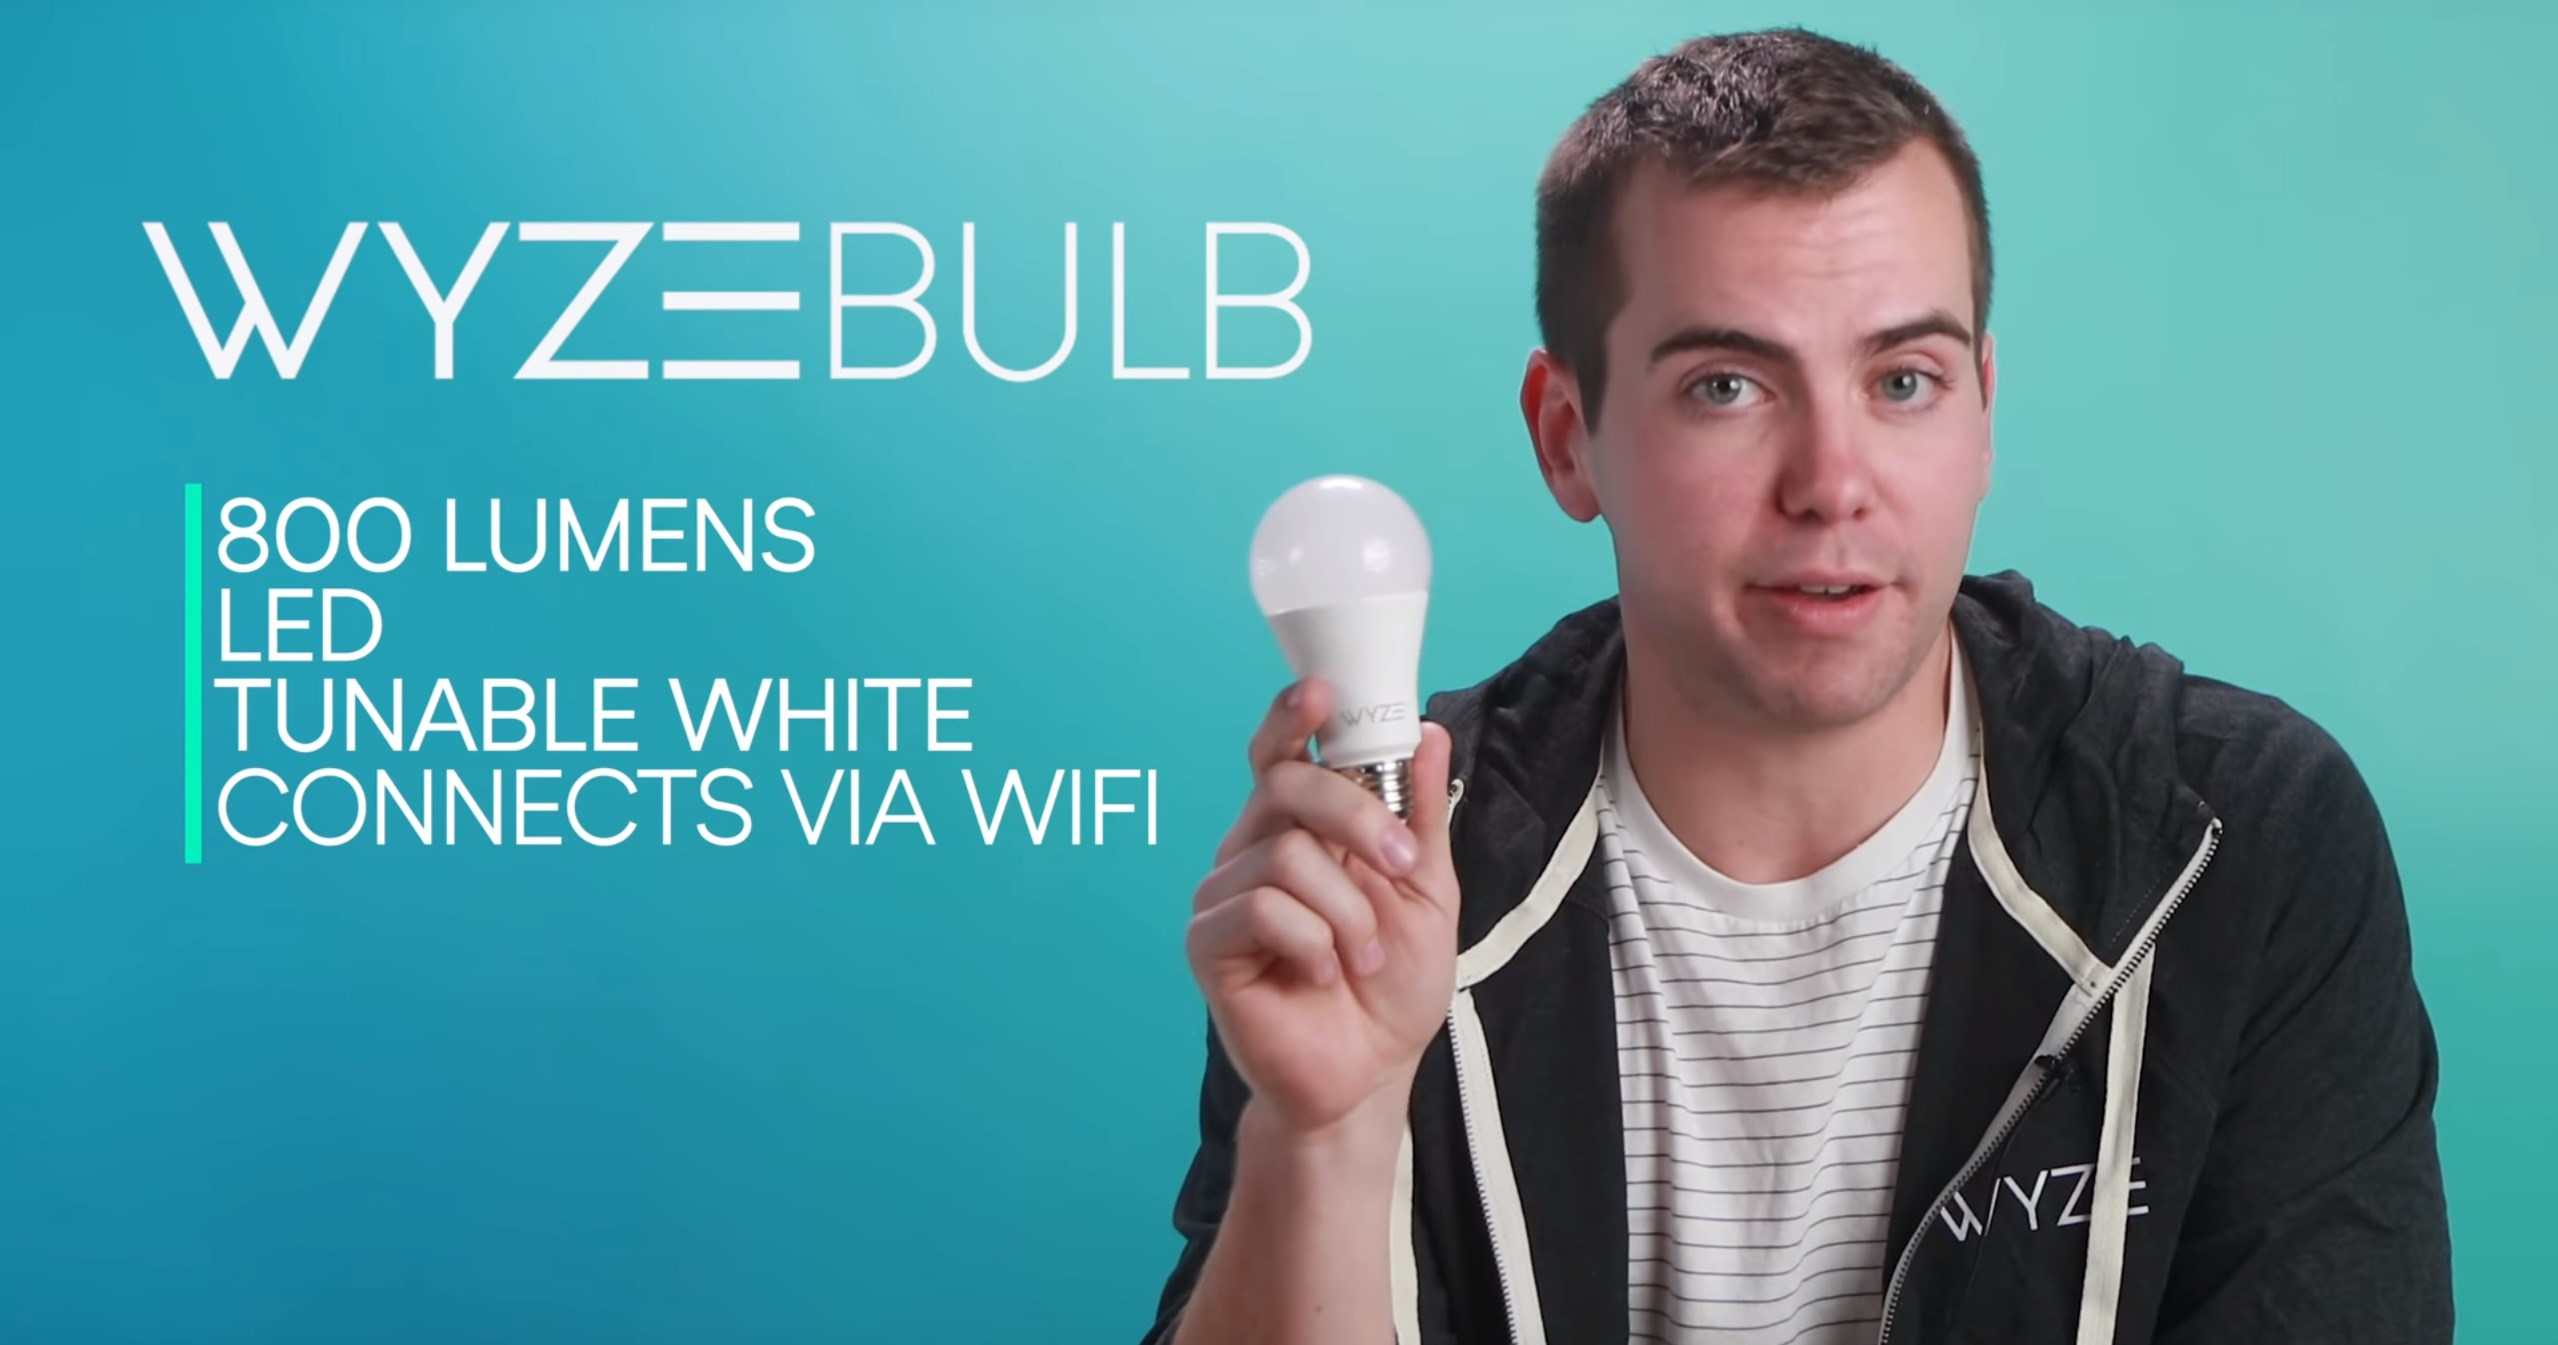 Wyze's upcoming smart light bulb is Assistant-compatible and only $8, pre-orders open now